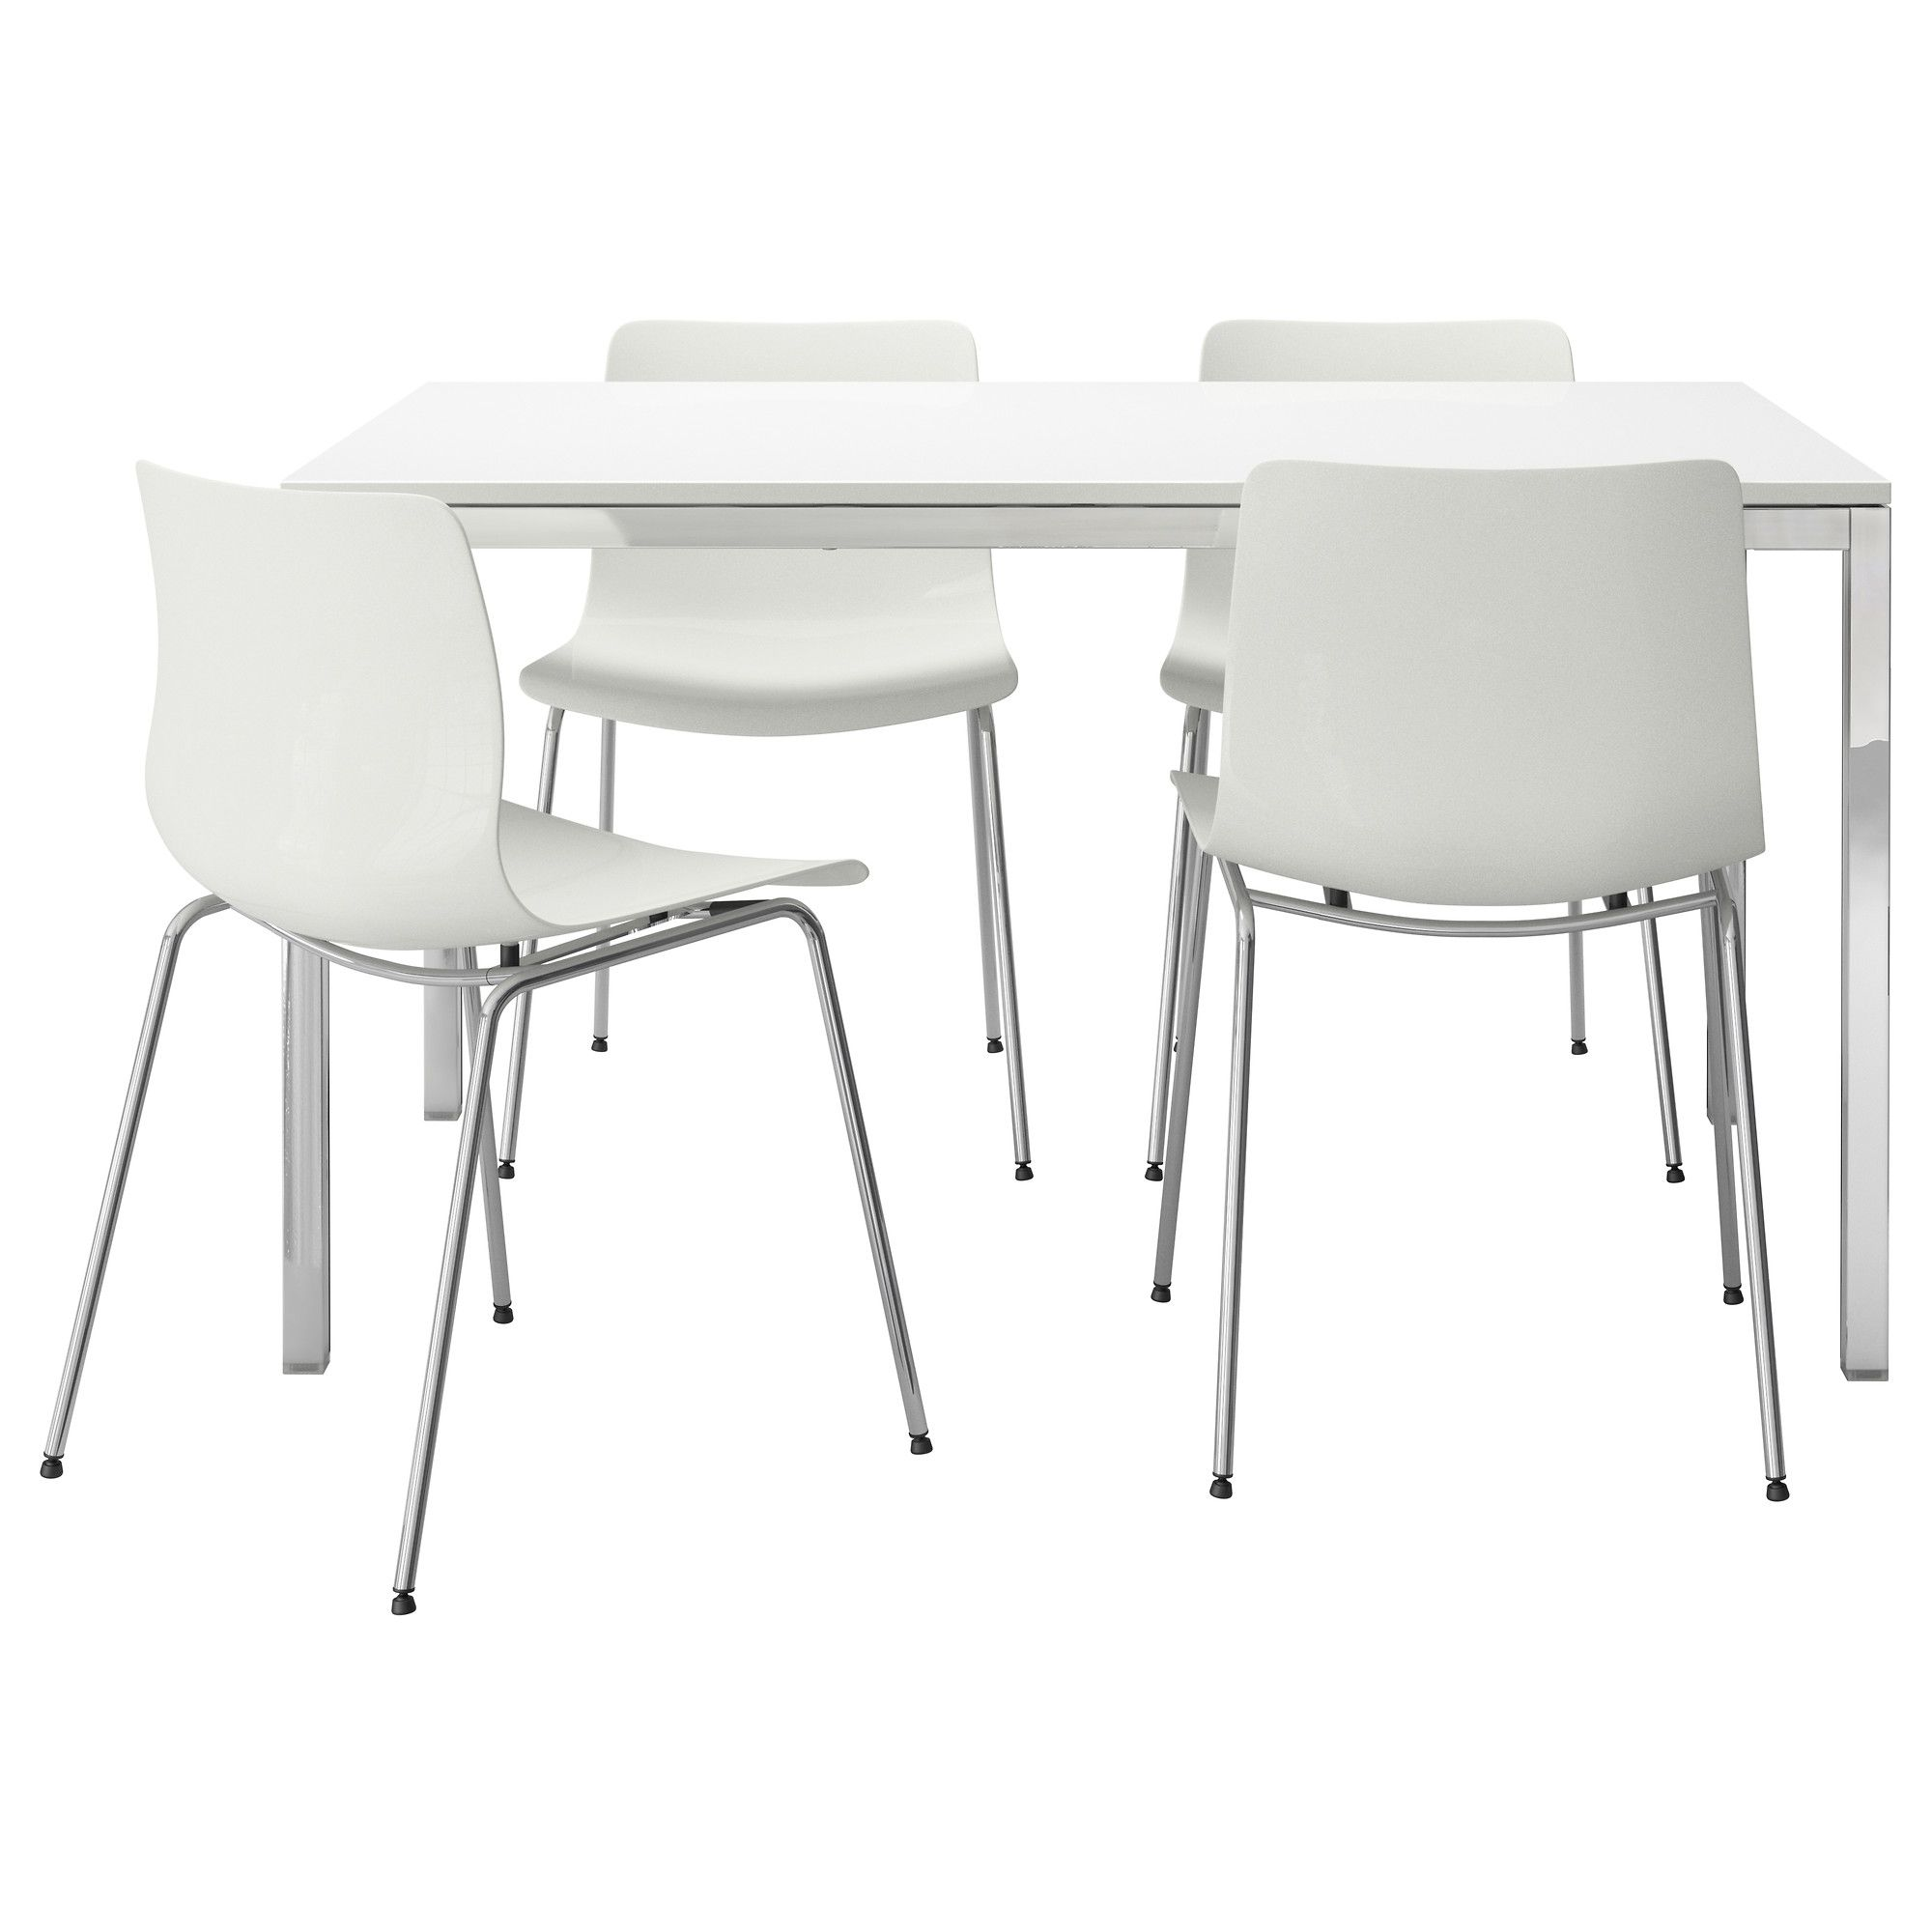 Kitchen table TORSBY ERLAND Table and 4 chairs IKEA